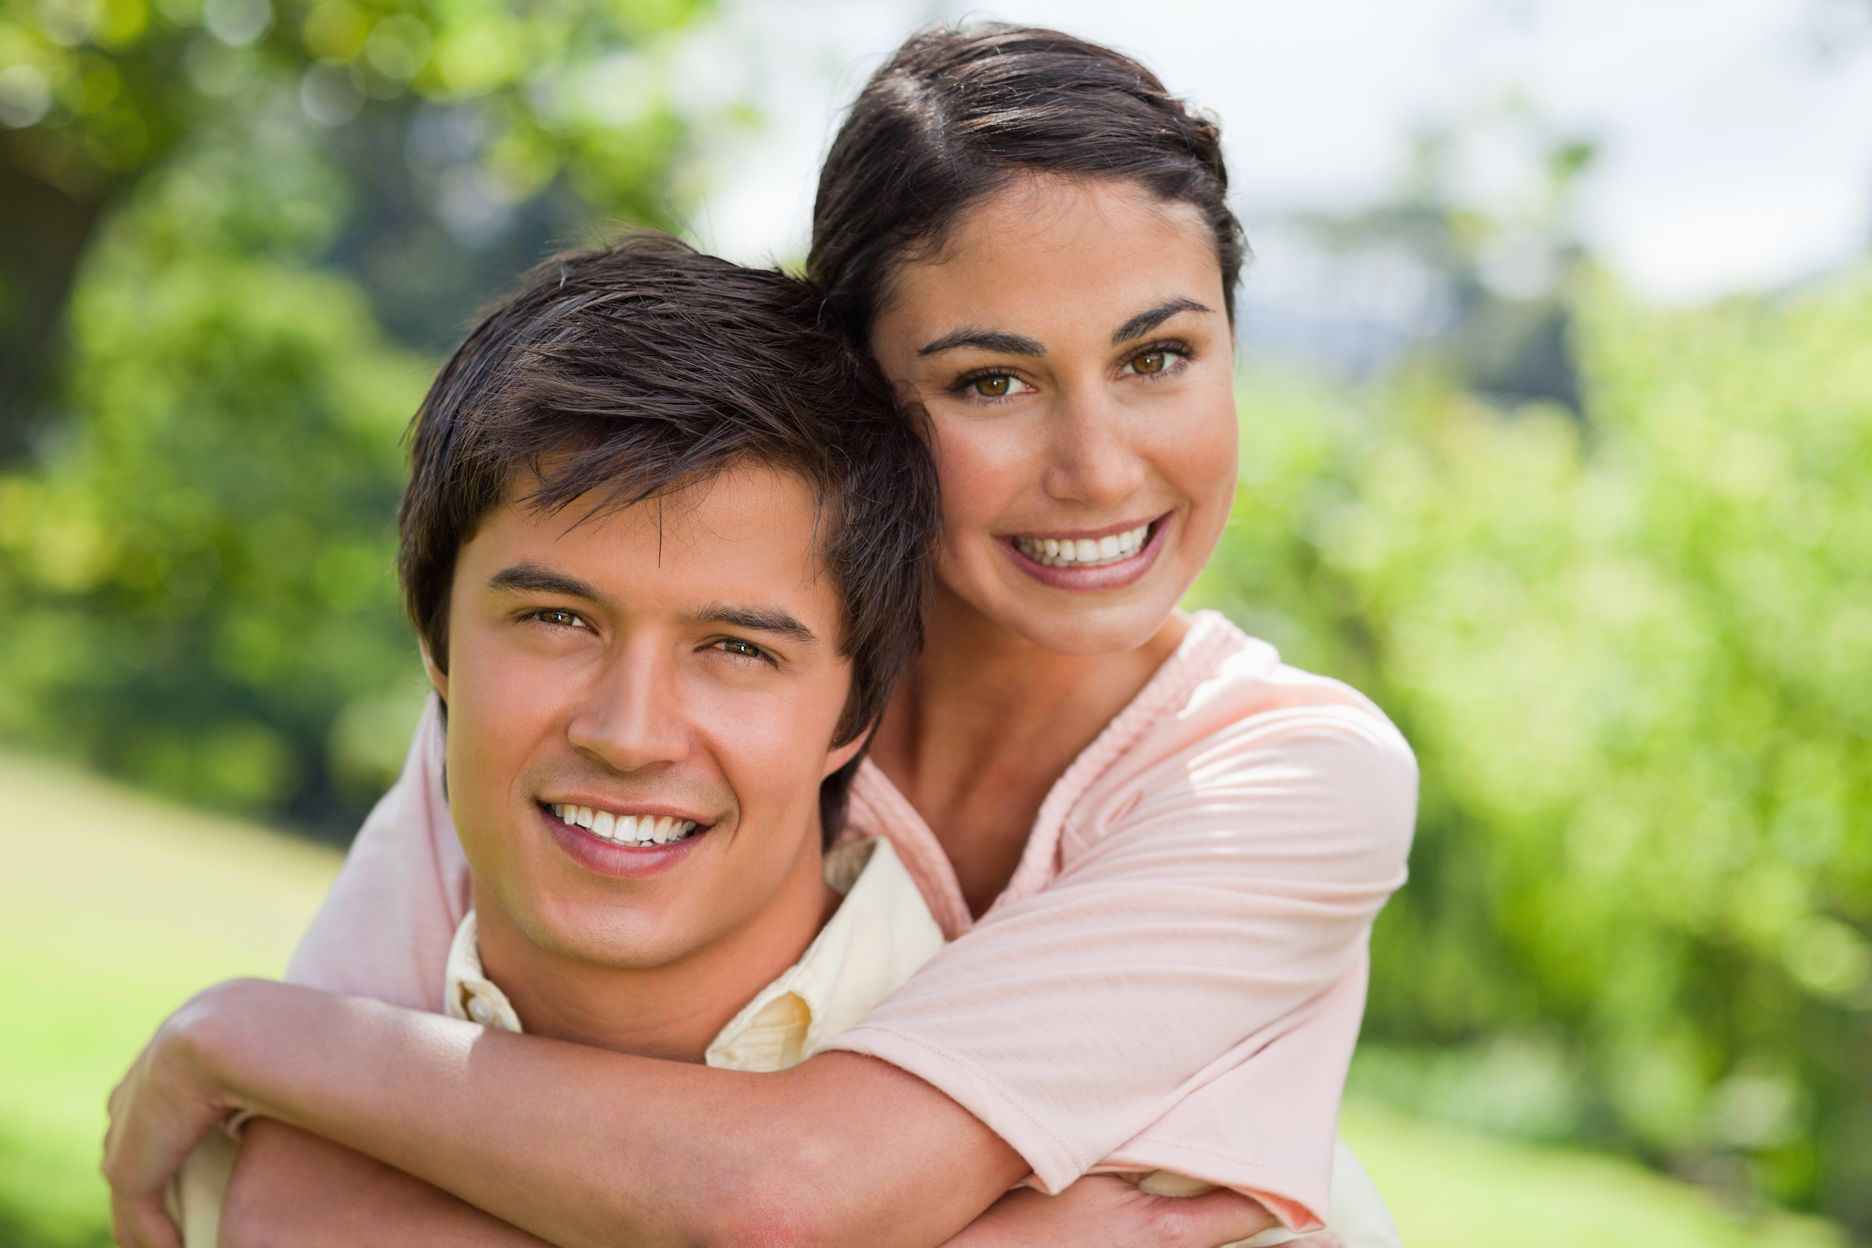 Laser Dentistry - Photo of couple